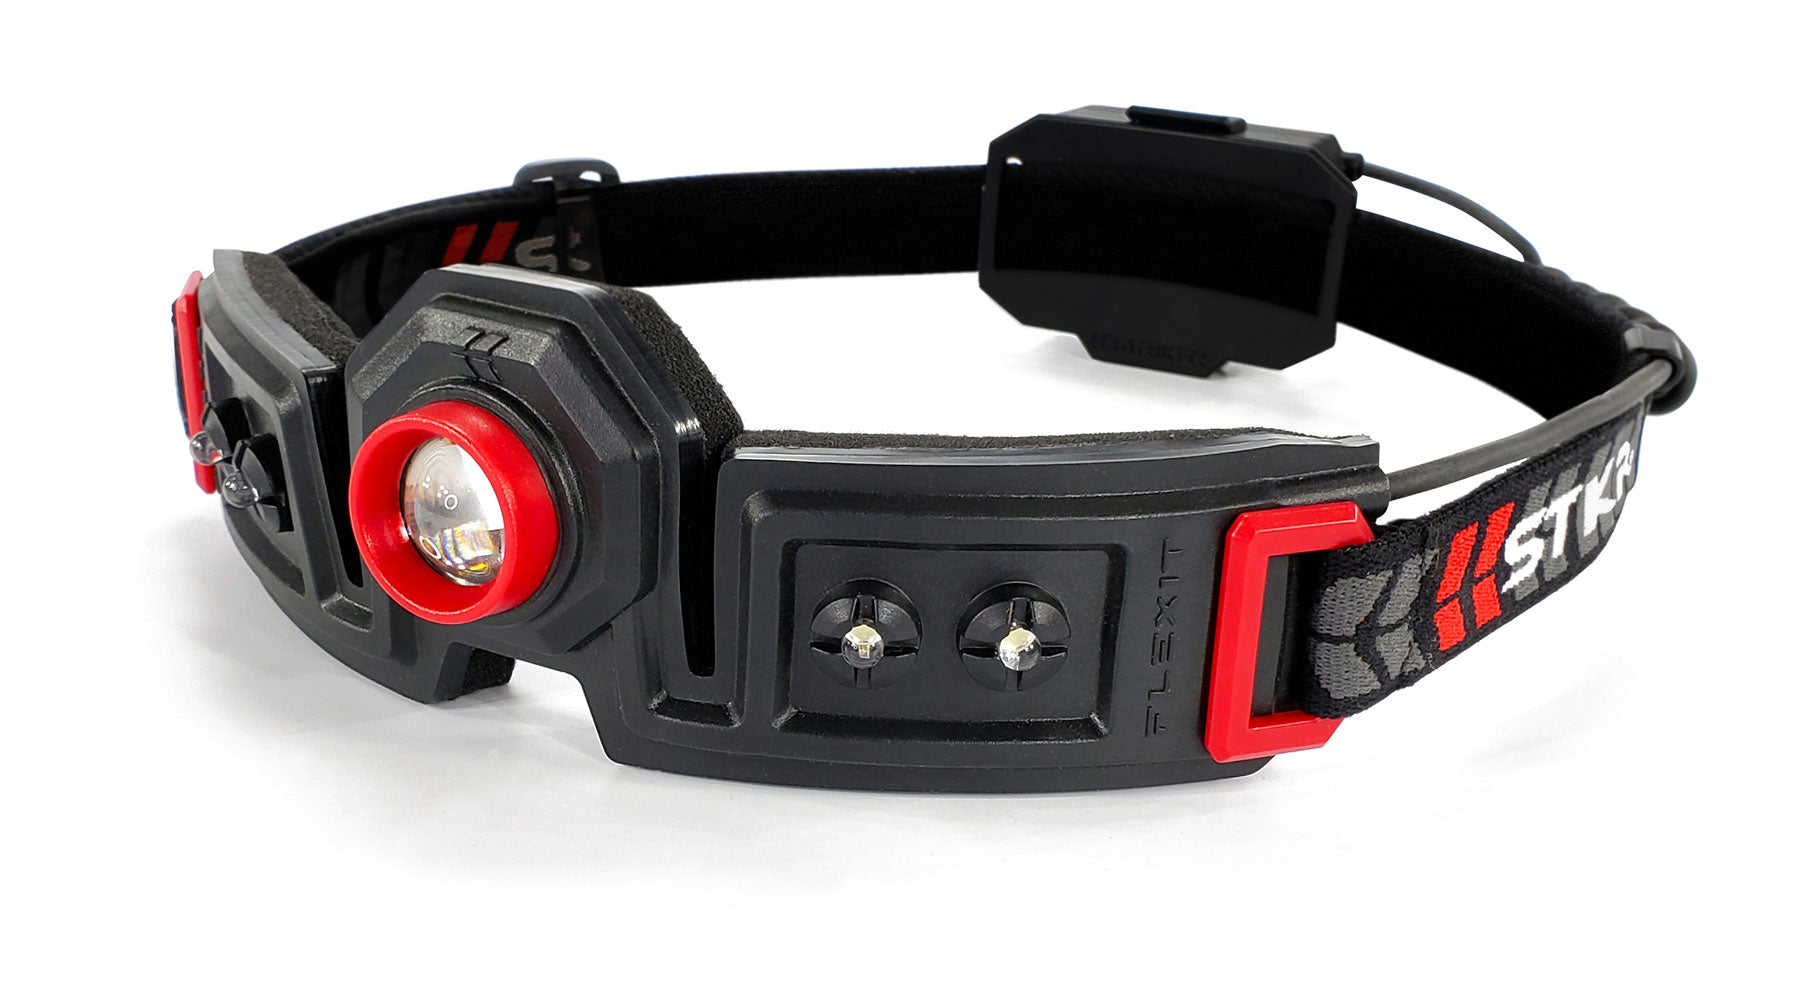 The STKR Concepts FLEXIT Headlamp 2.5 - striker